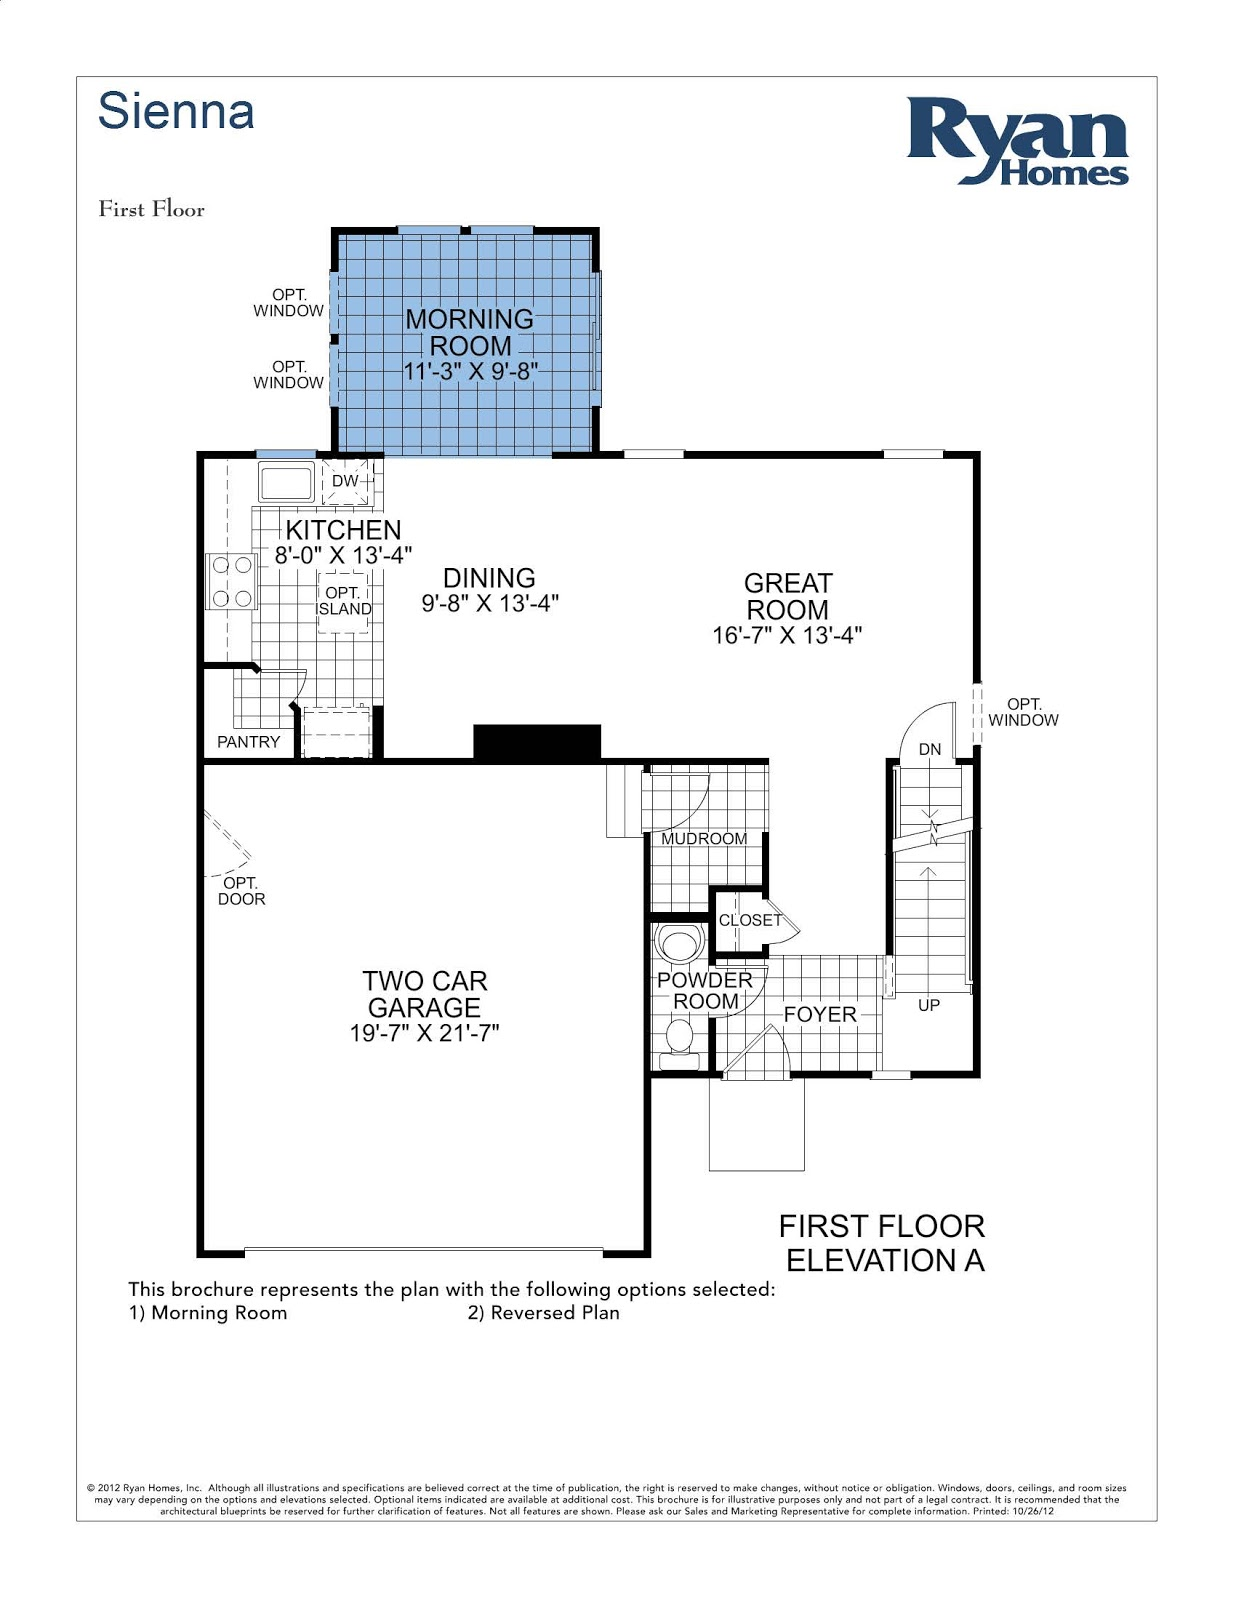 Sienna ryan home floor plan house design plans for Ran homes plans